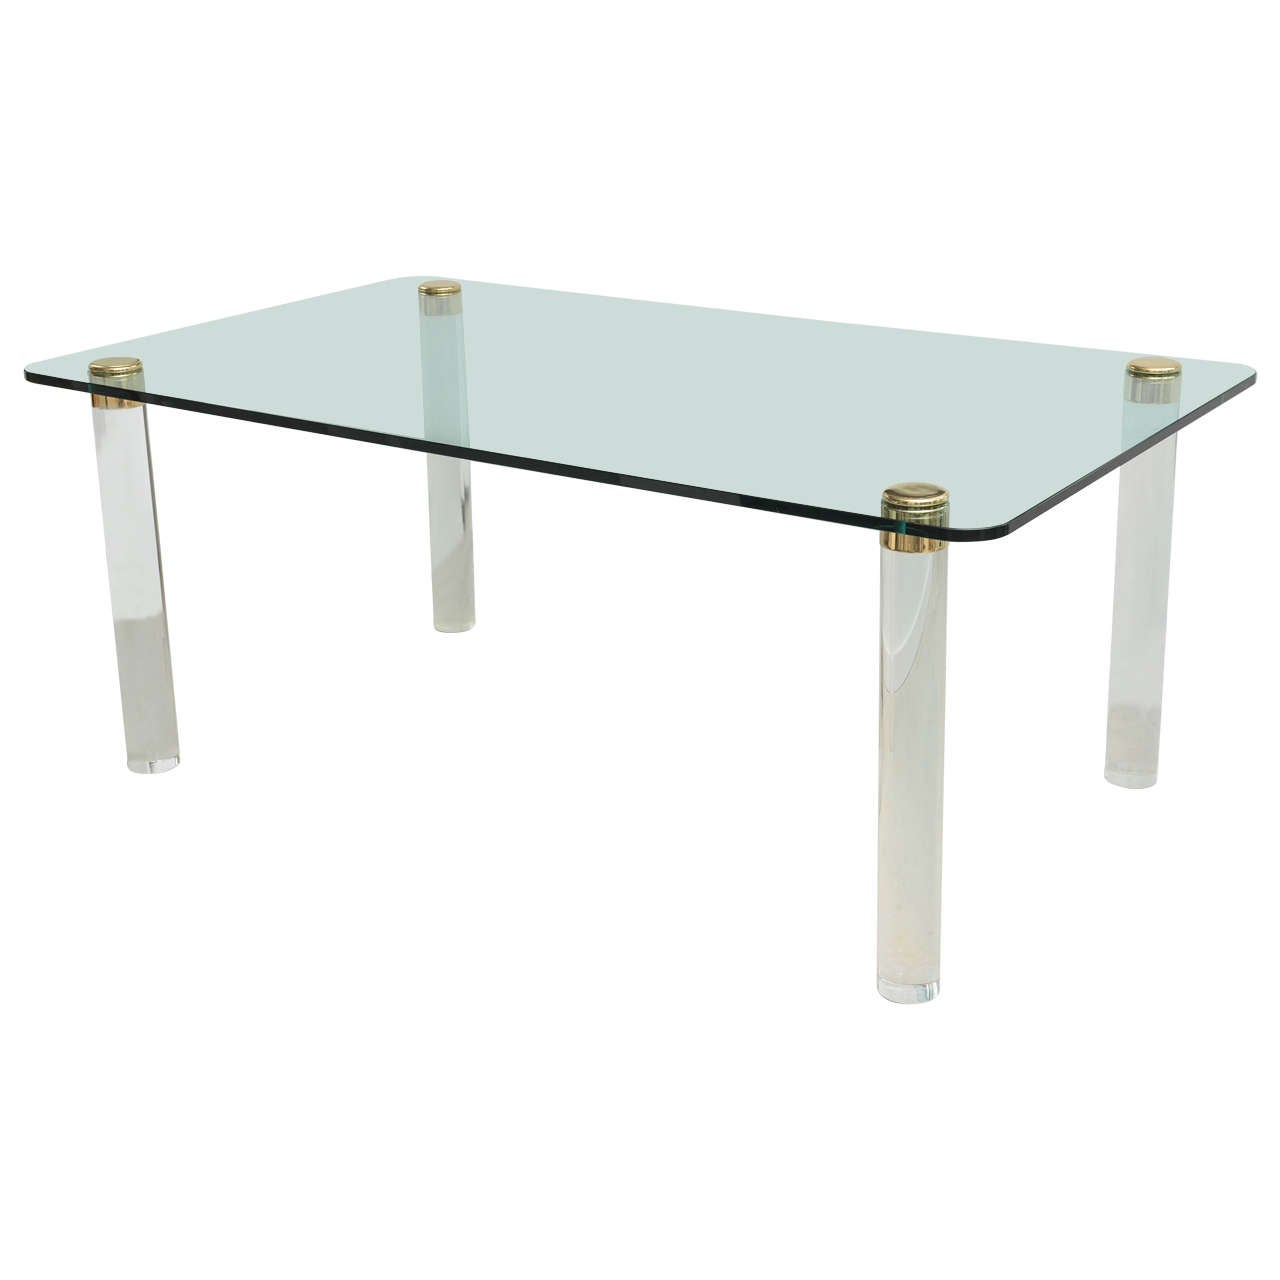 rectangular lucite and glass dining table by pace at 1stdibs. Black Bedroom Furniture Sets. Home Design Ideas